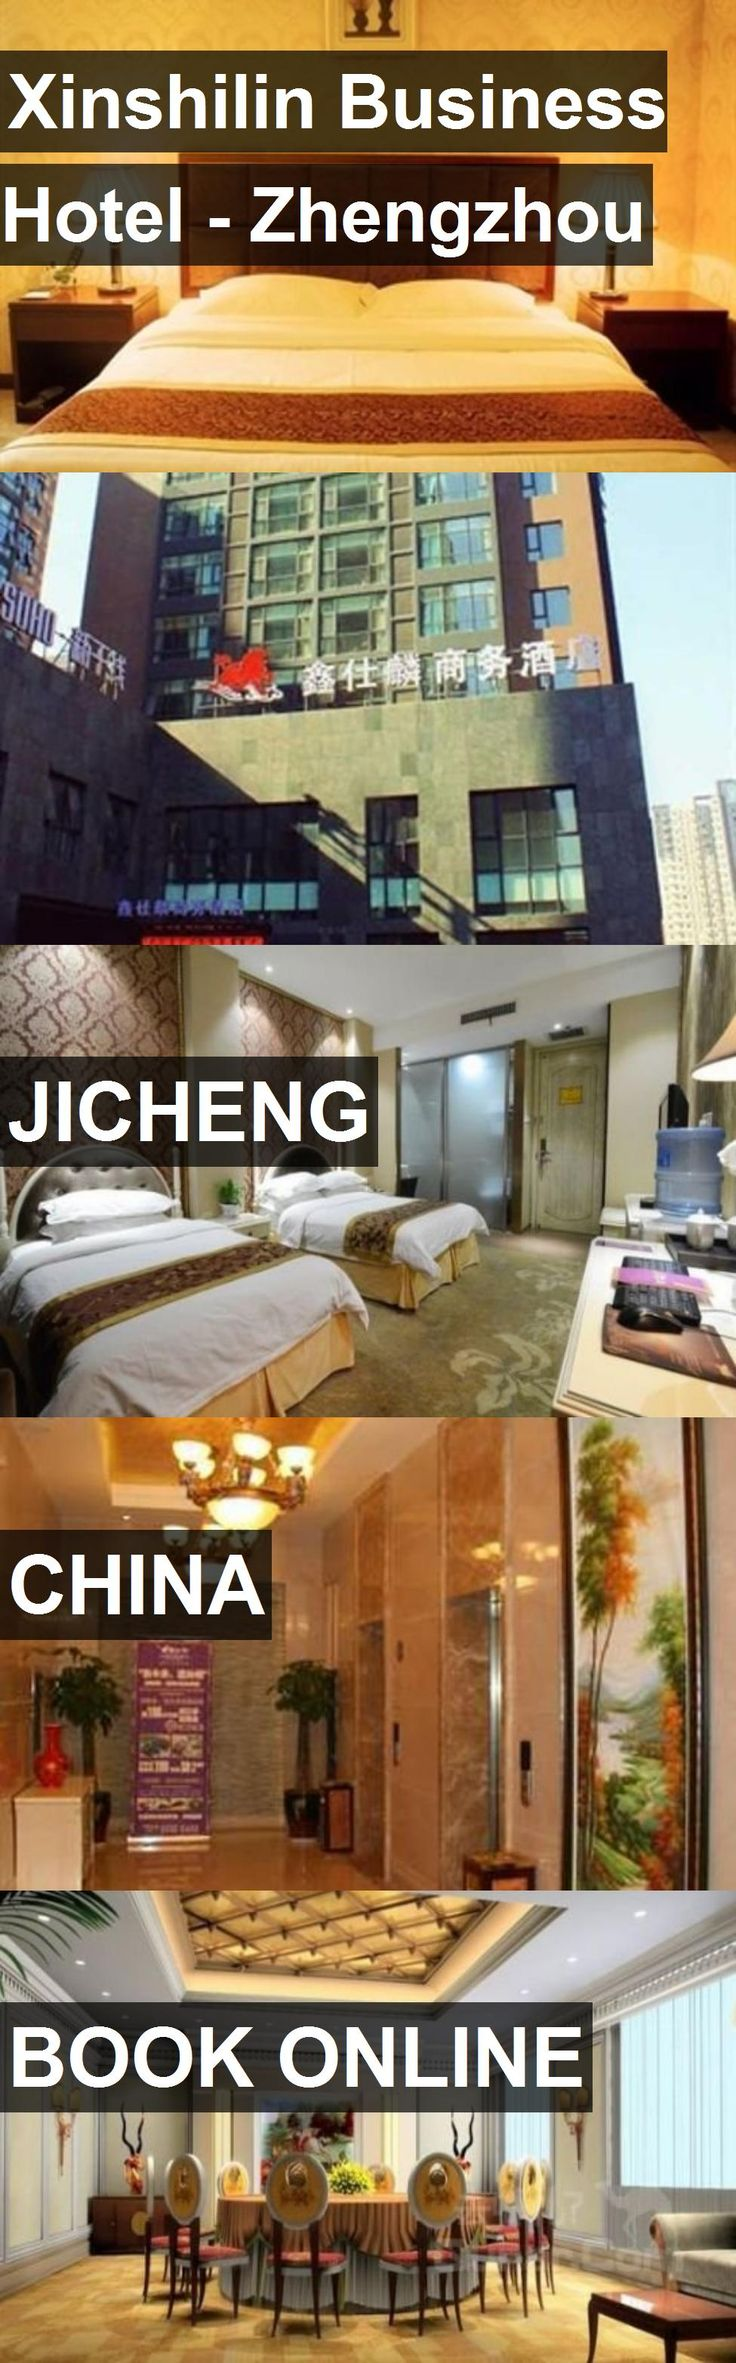 Hotel Xinshilin Business Hotel - Zhengzhou in Jicheng, China. For more information, photos, reviews and best prices please follow the link. #China #Jicheng #XinshilinBusinessHotel-Zhengzhou #hotel #travel #vacation